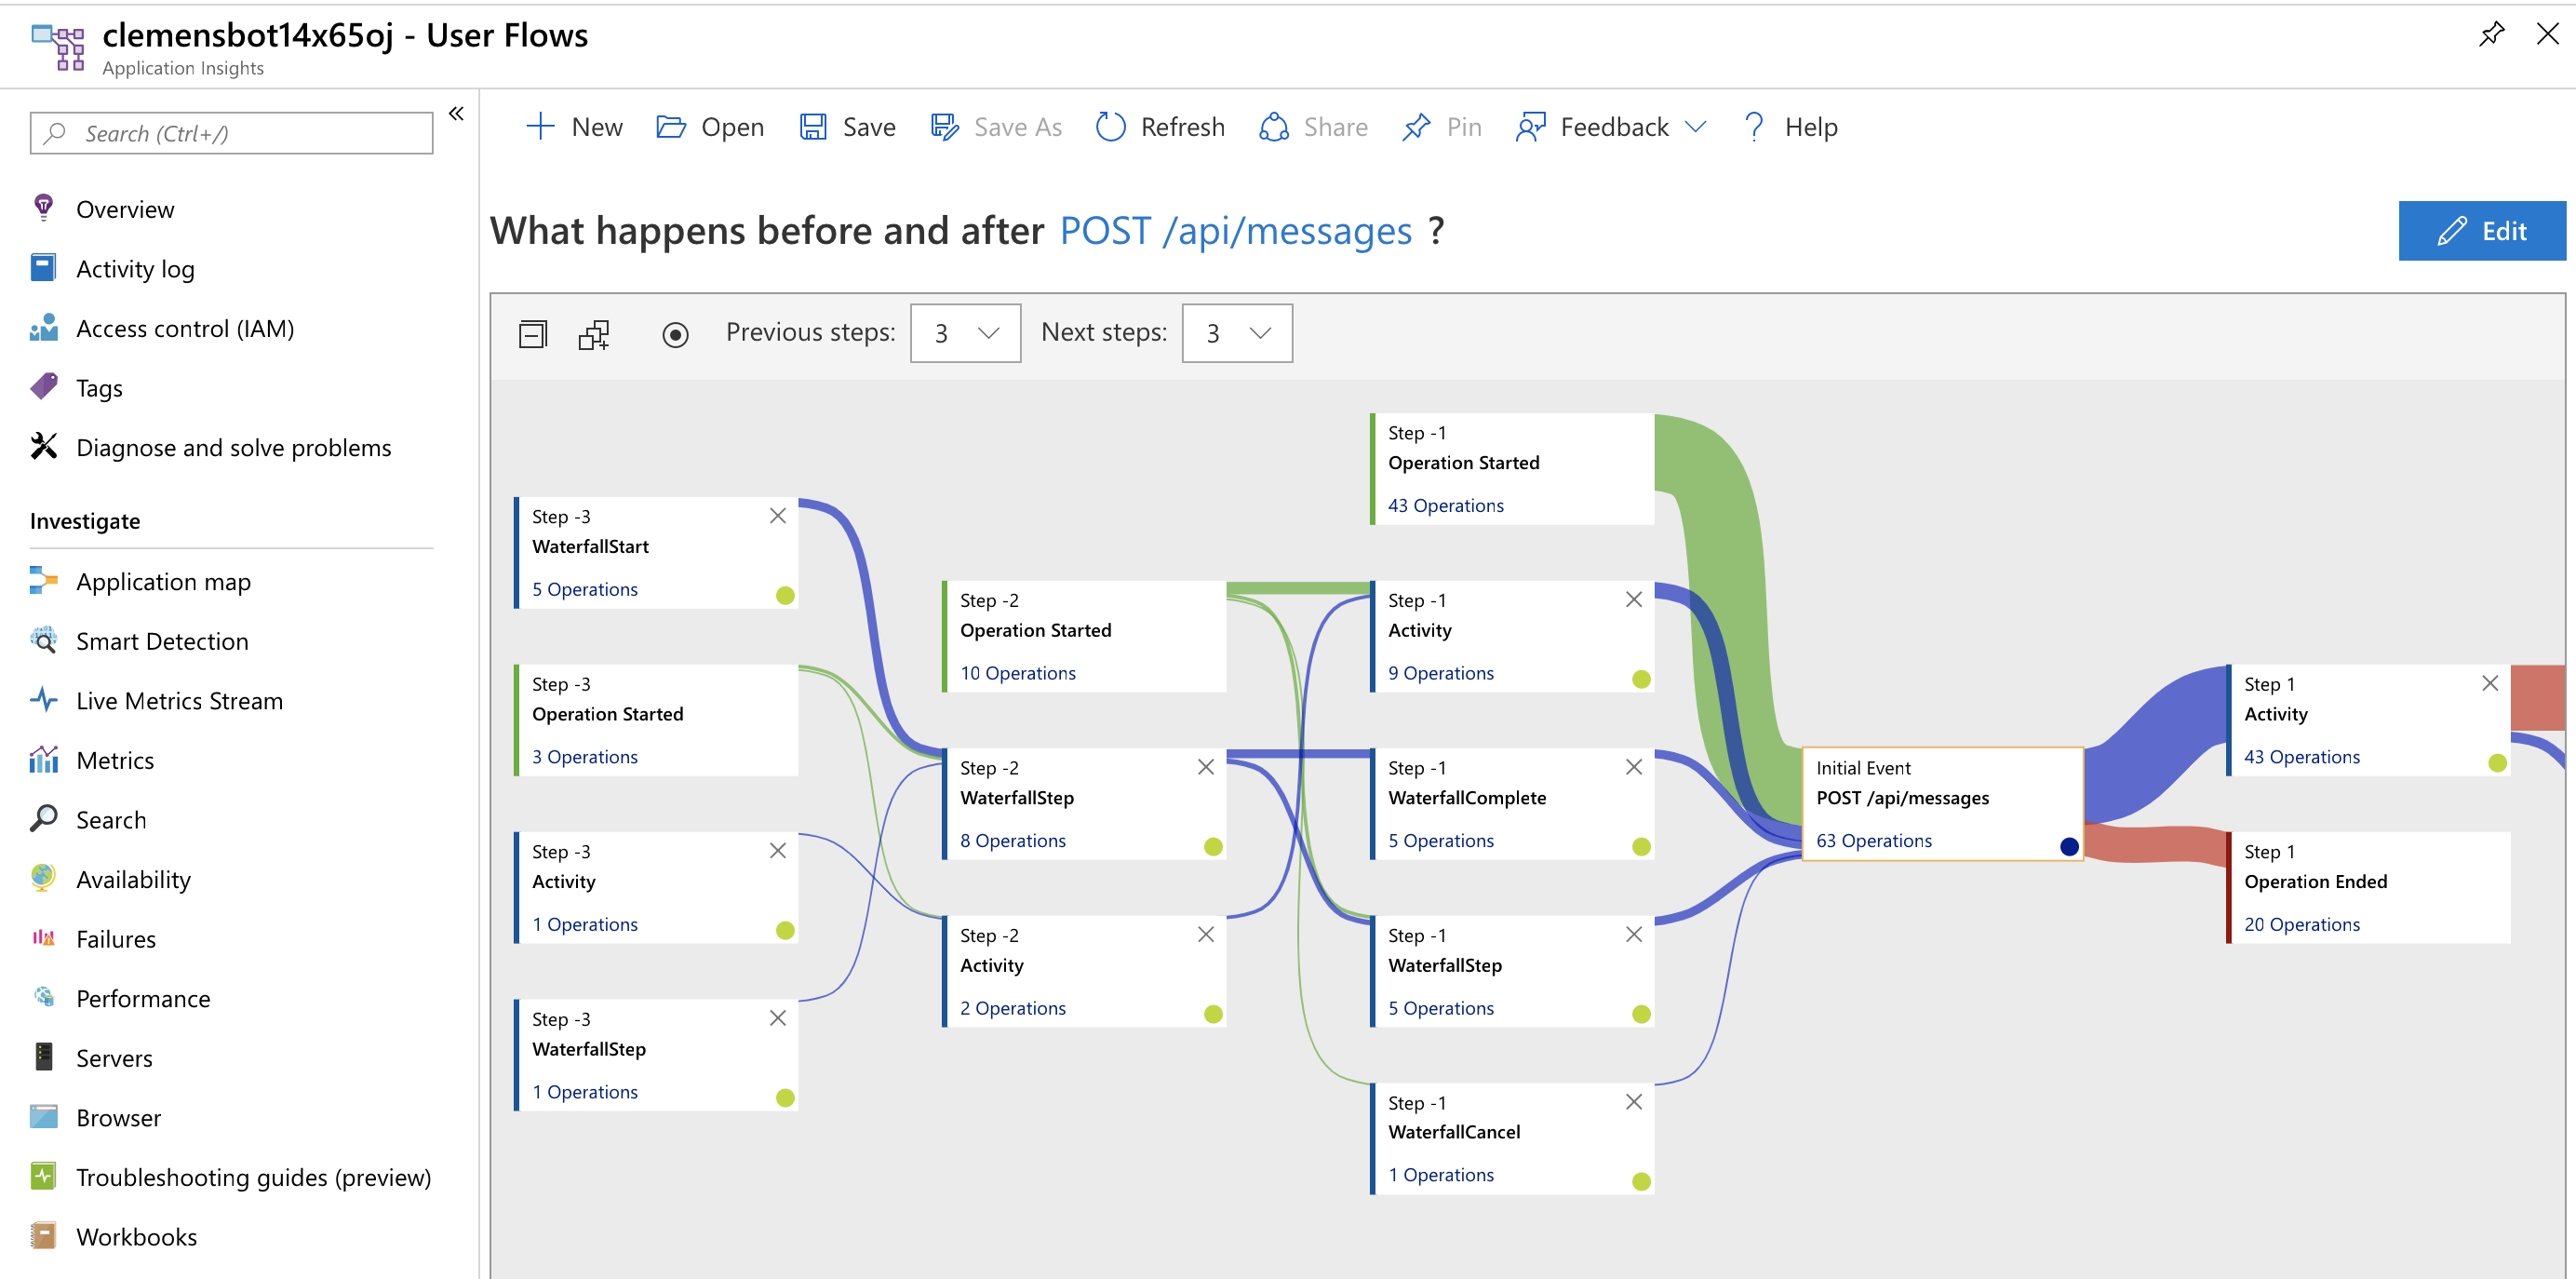 User Flow in Application Insights